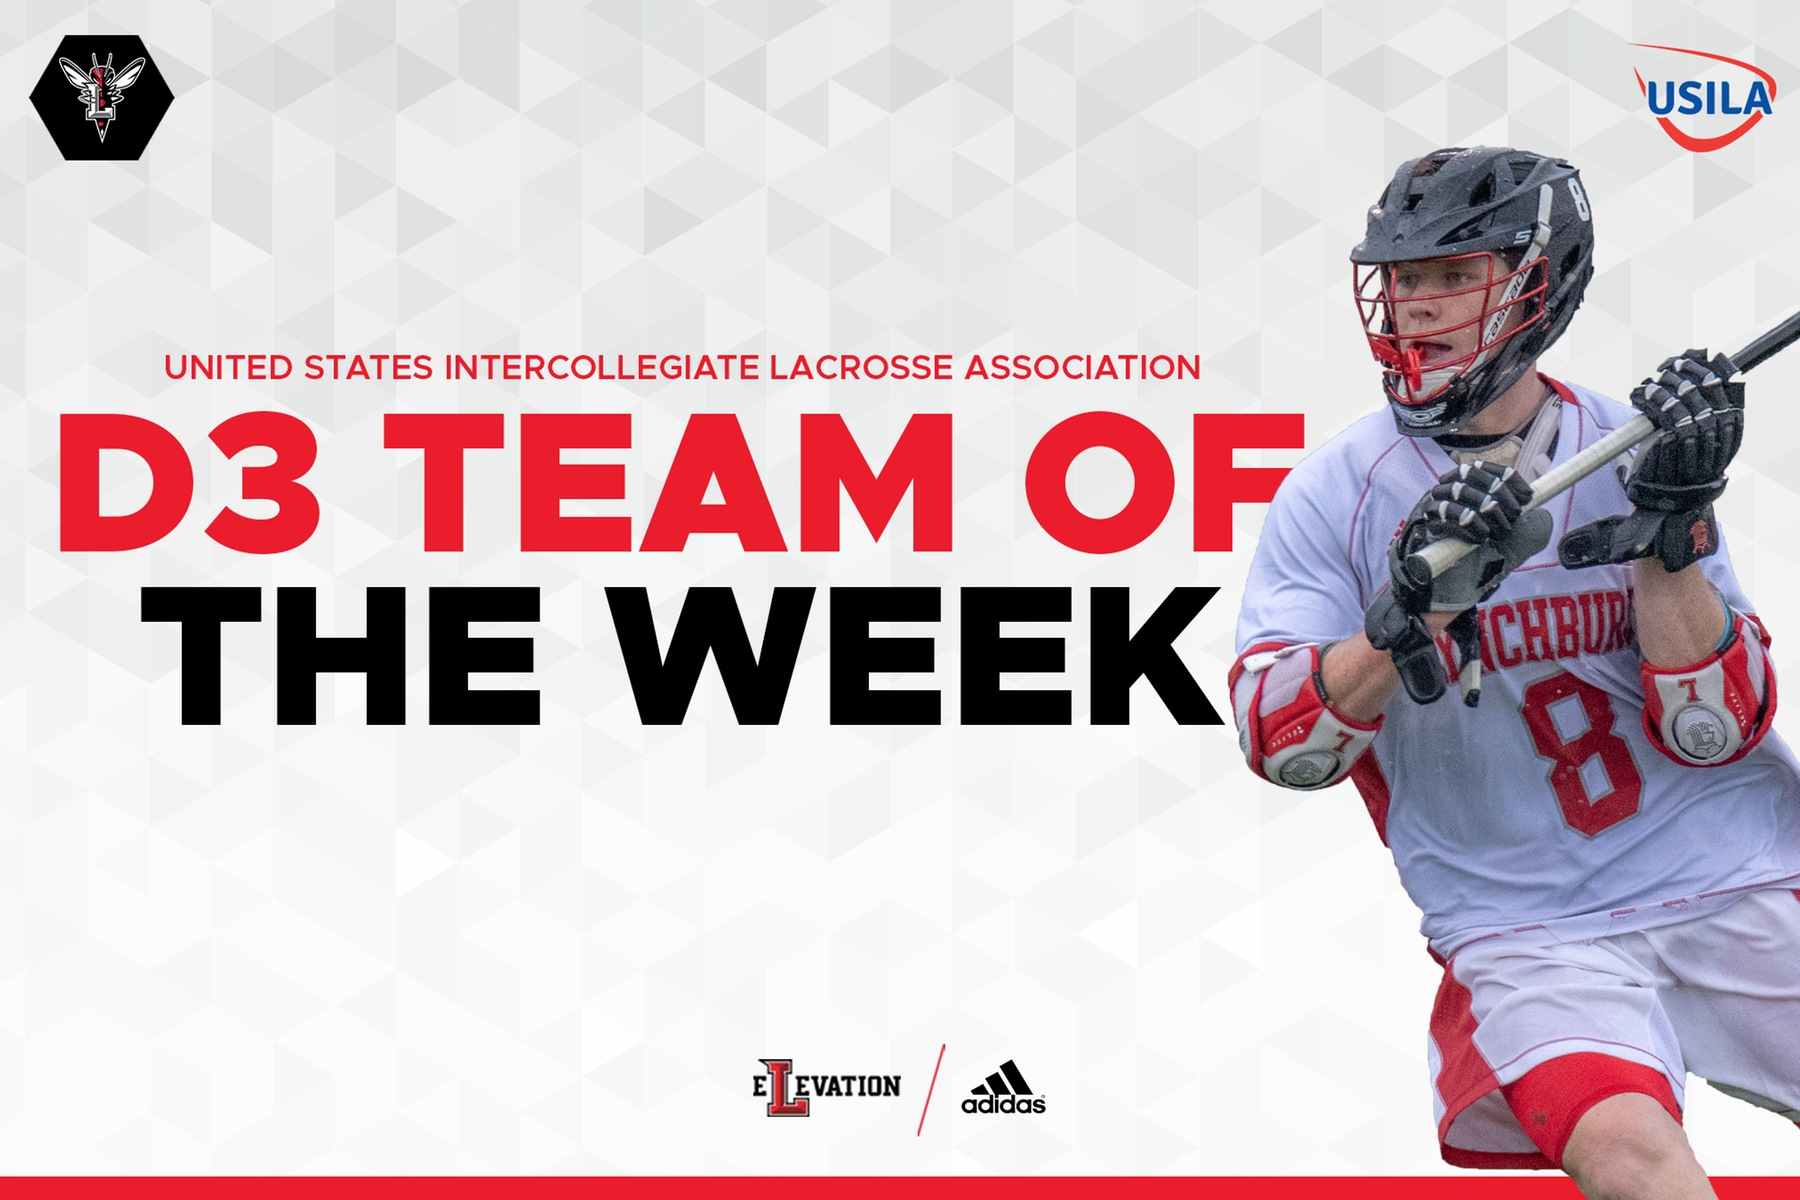 Colin Dean D3 team of the week graphic on white background